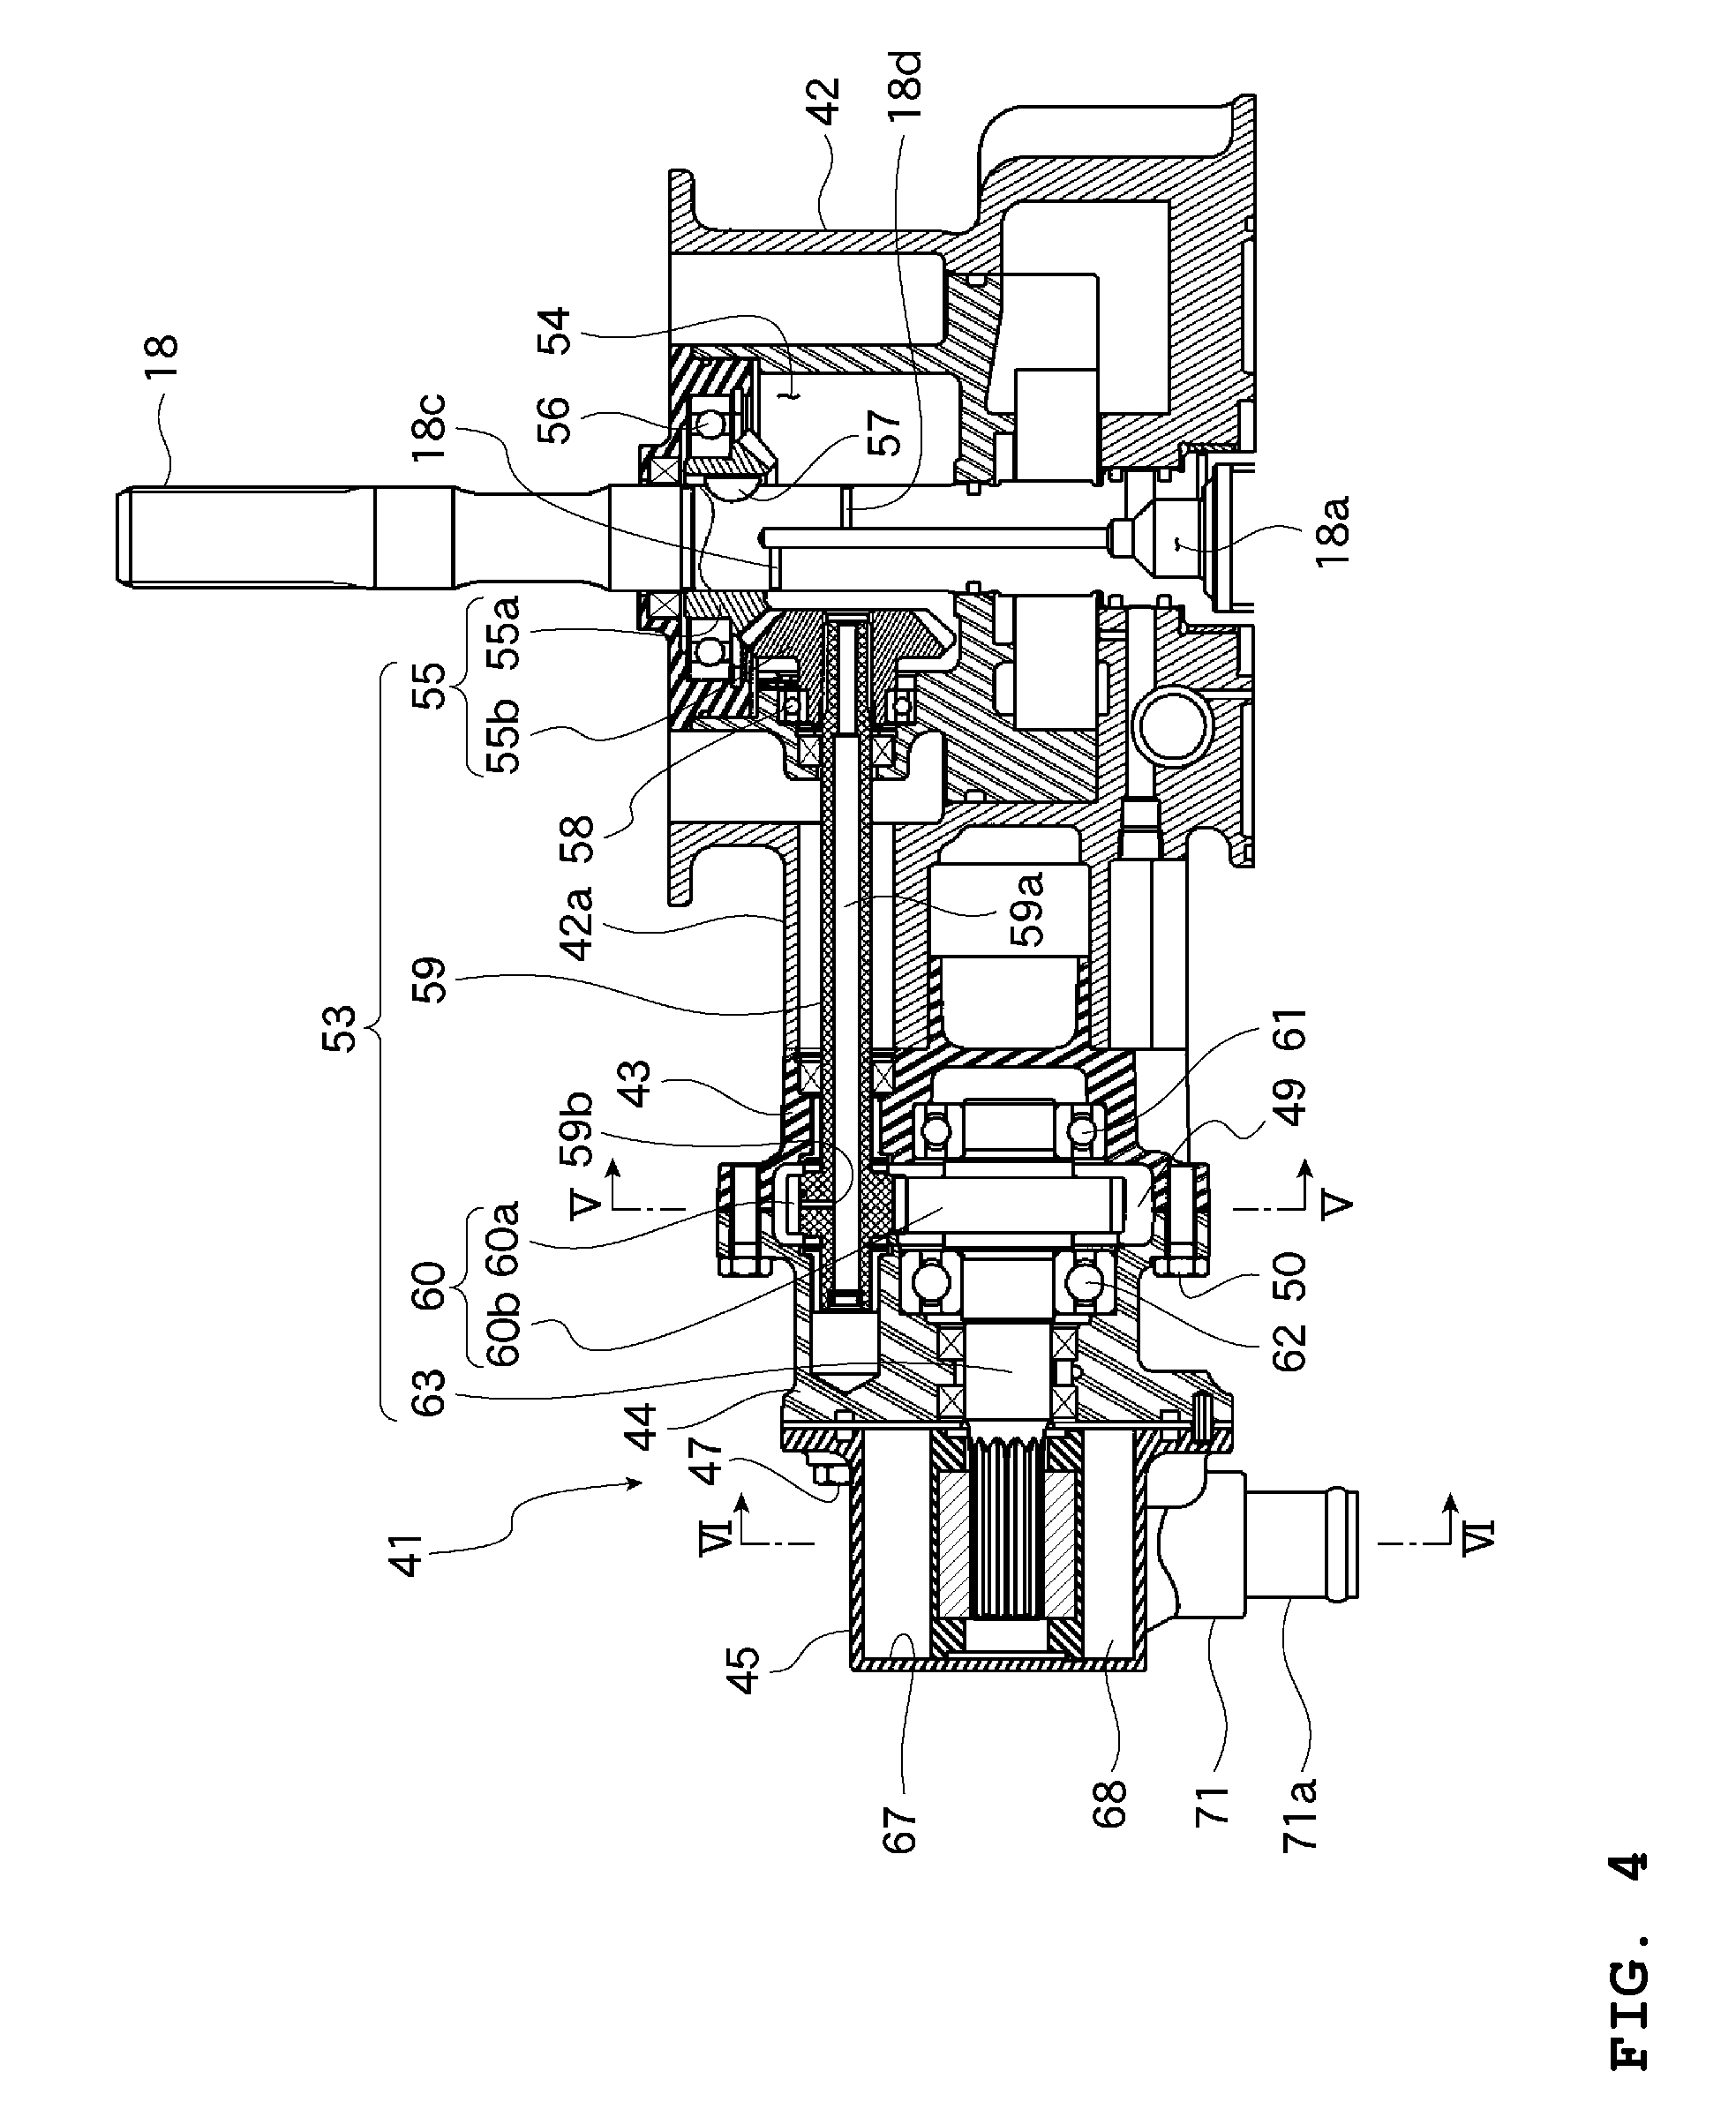 patent us20090163094 outboard motor google patentsMarine Transmission Diagrams As Well As Patent Us8715022 Marine Vessel #12